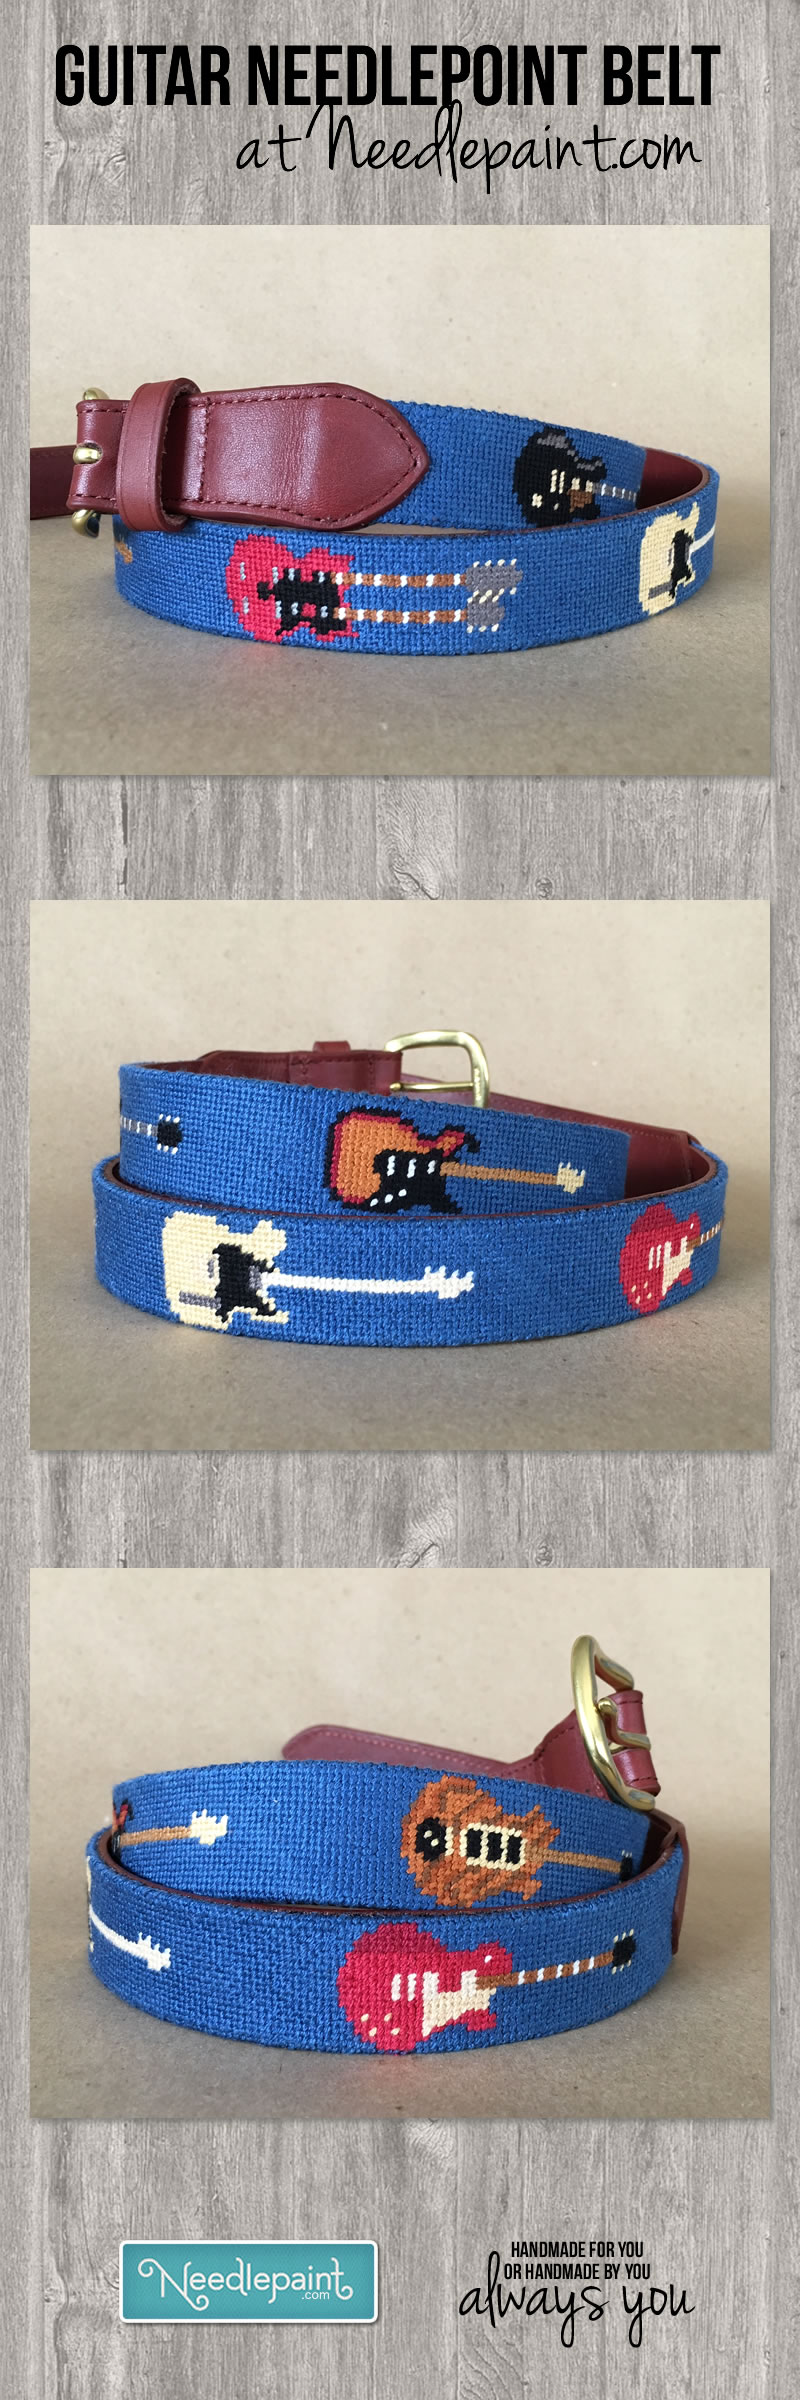 Guitar Rock and Roll Needlepoint Belt